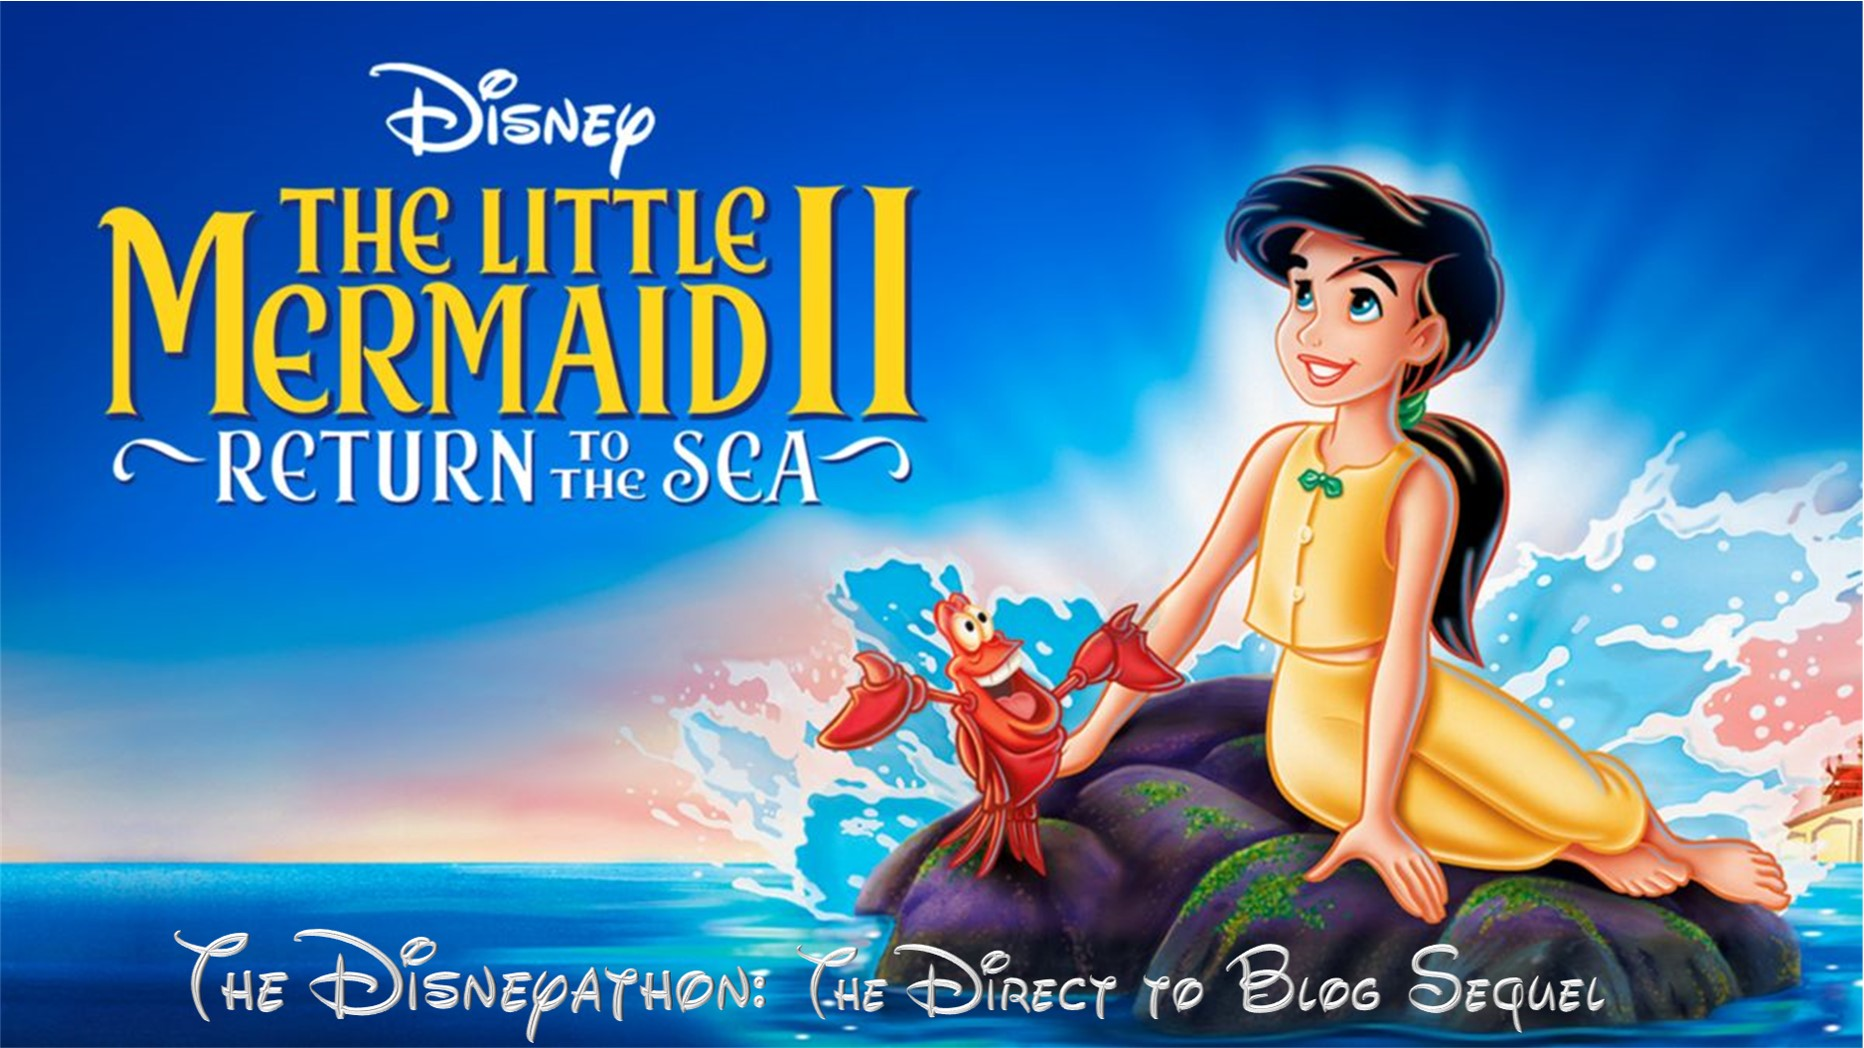 The Disneyathon: The Direct to Blog Sequel – Part 8: The Little Mermaid II: Return to the Sea